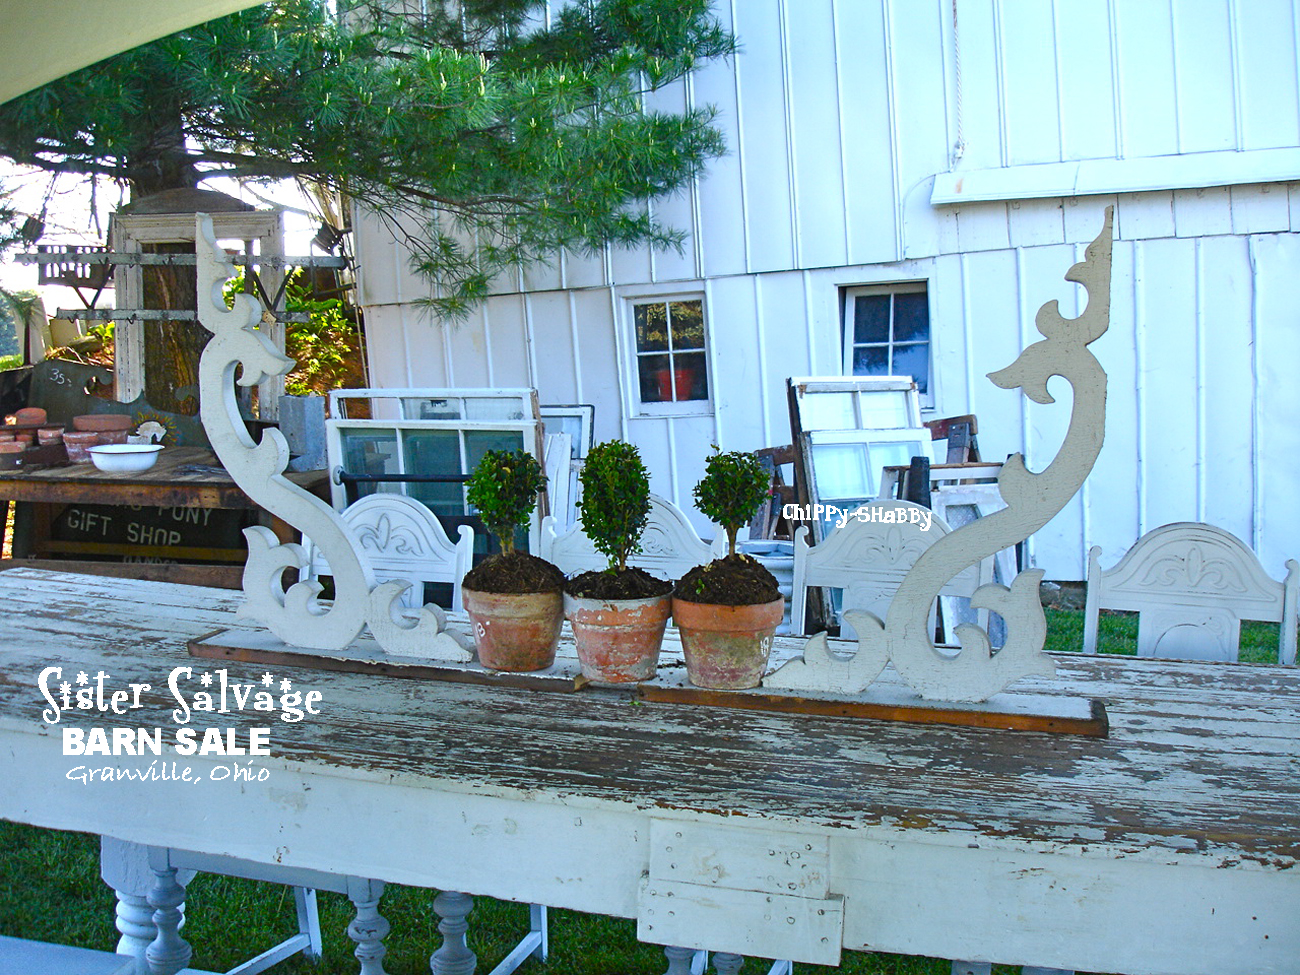 ChiPPy! - SHaBBy!: SISTER SaLVaGE ~ Best Barn SaLe in ...